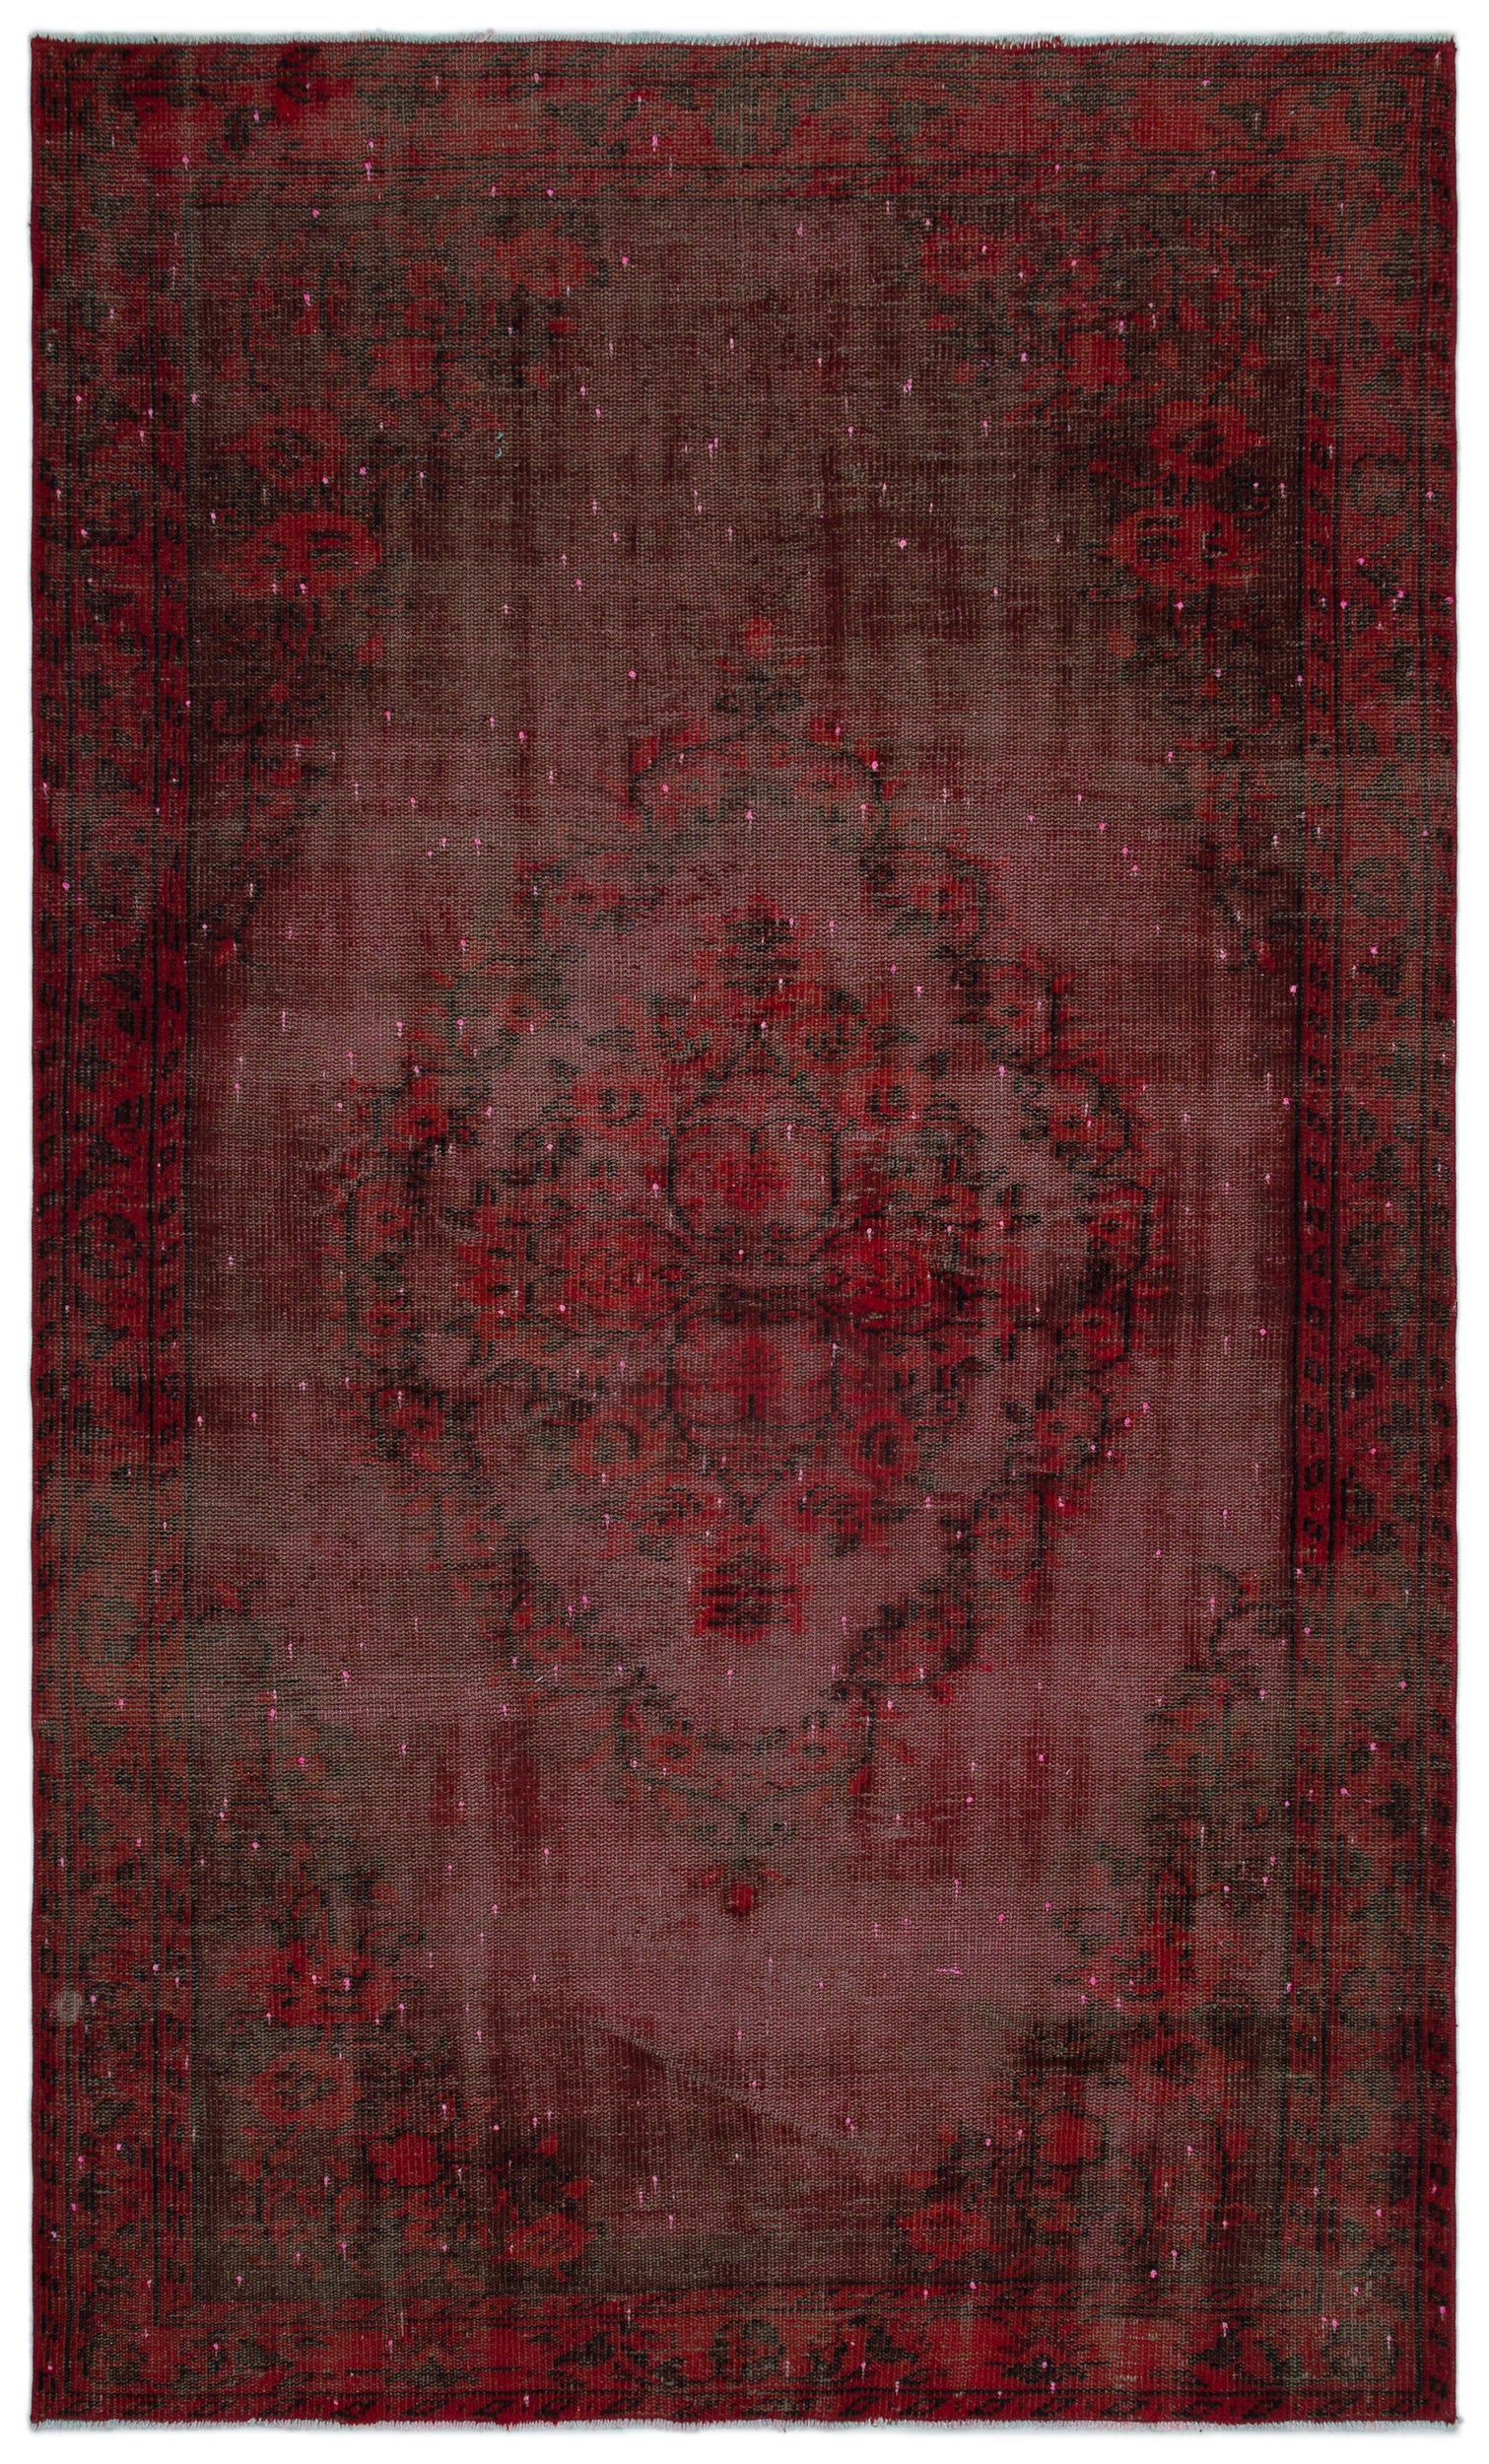 Naturel Over Dyed Vintage Rug 5'1'' x 8'3'' ft 154 x 252 cm